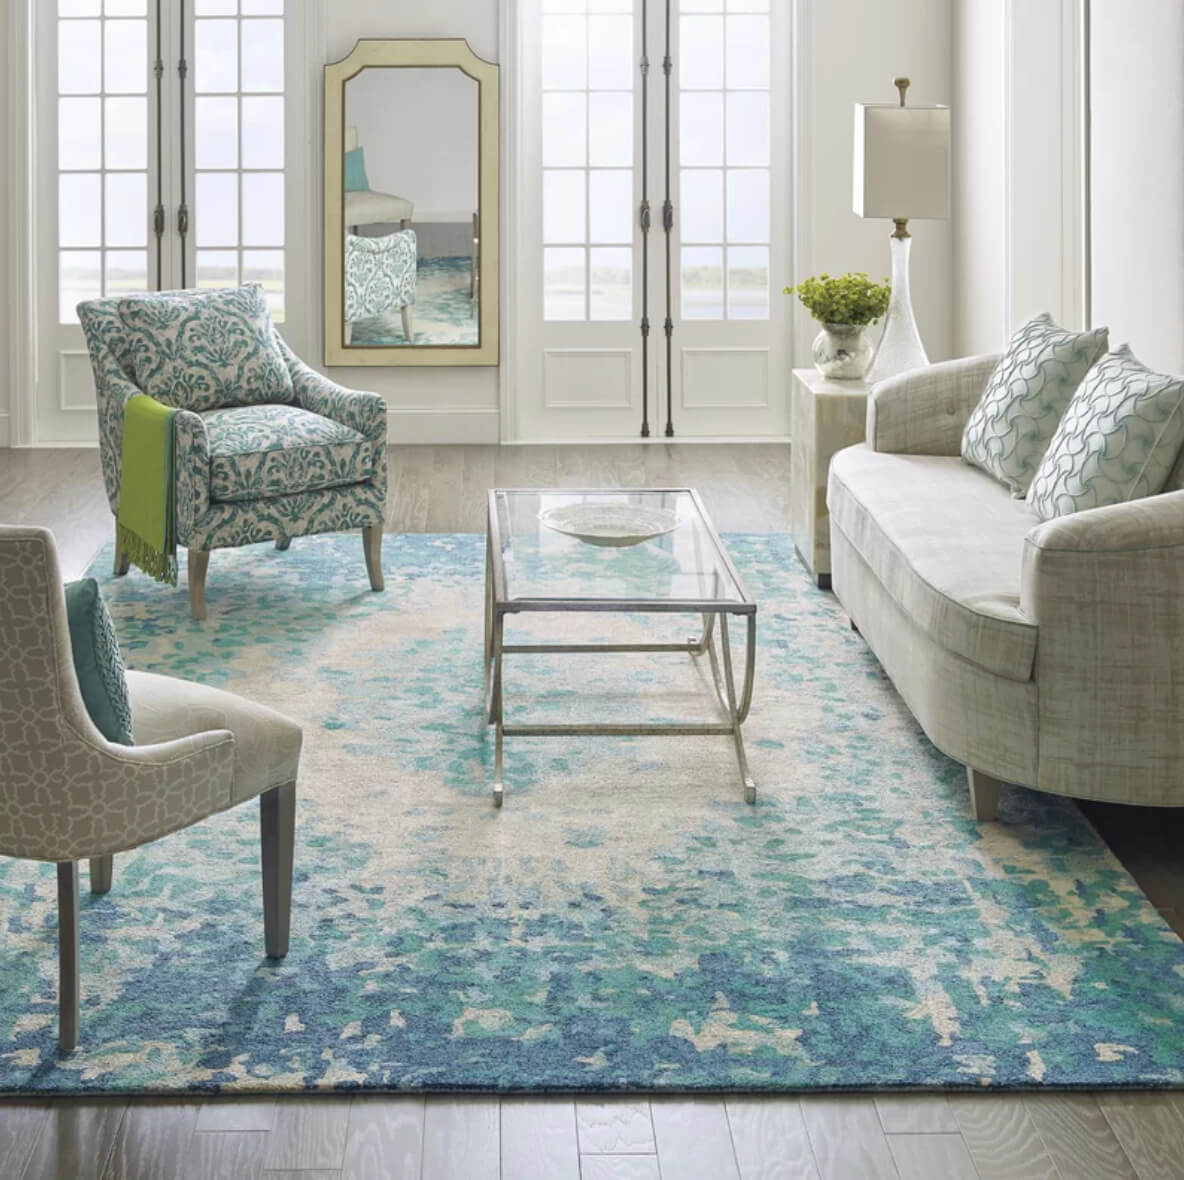 The Looking Gl Rug Adds Romance To A Living Room With An Impressionistic Fl Pattern Image Perigold